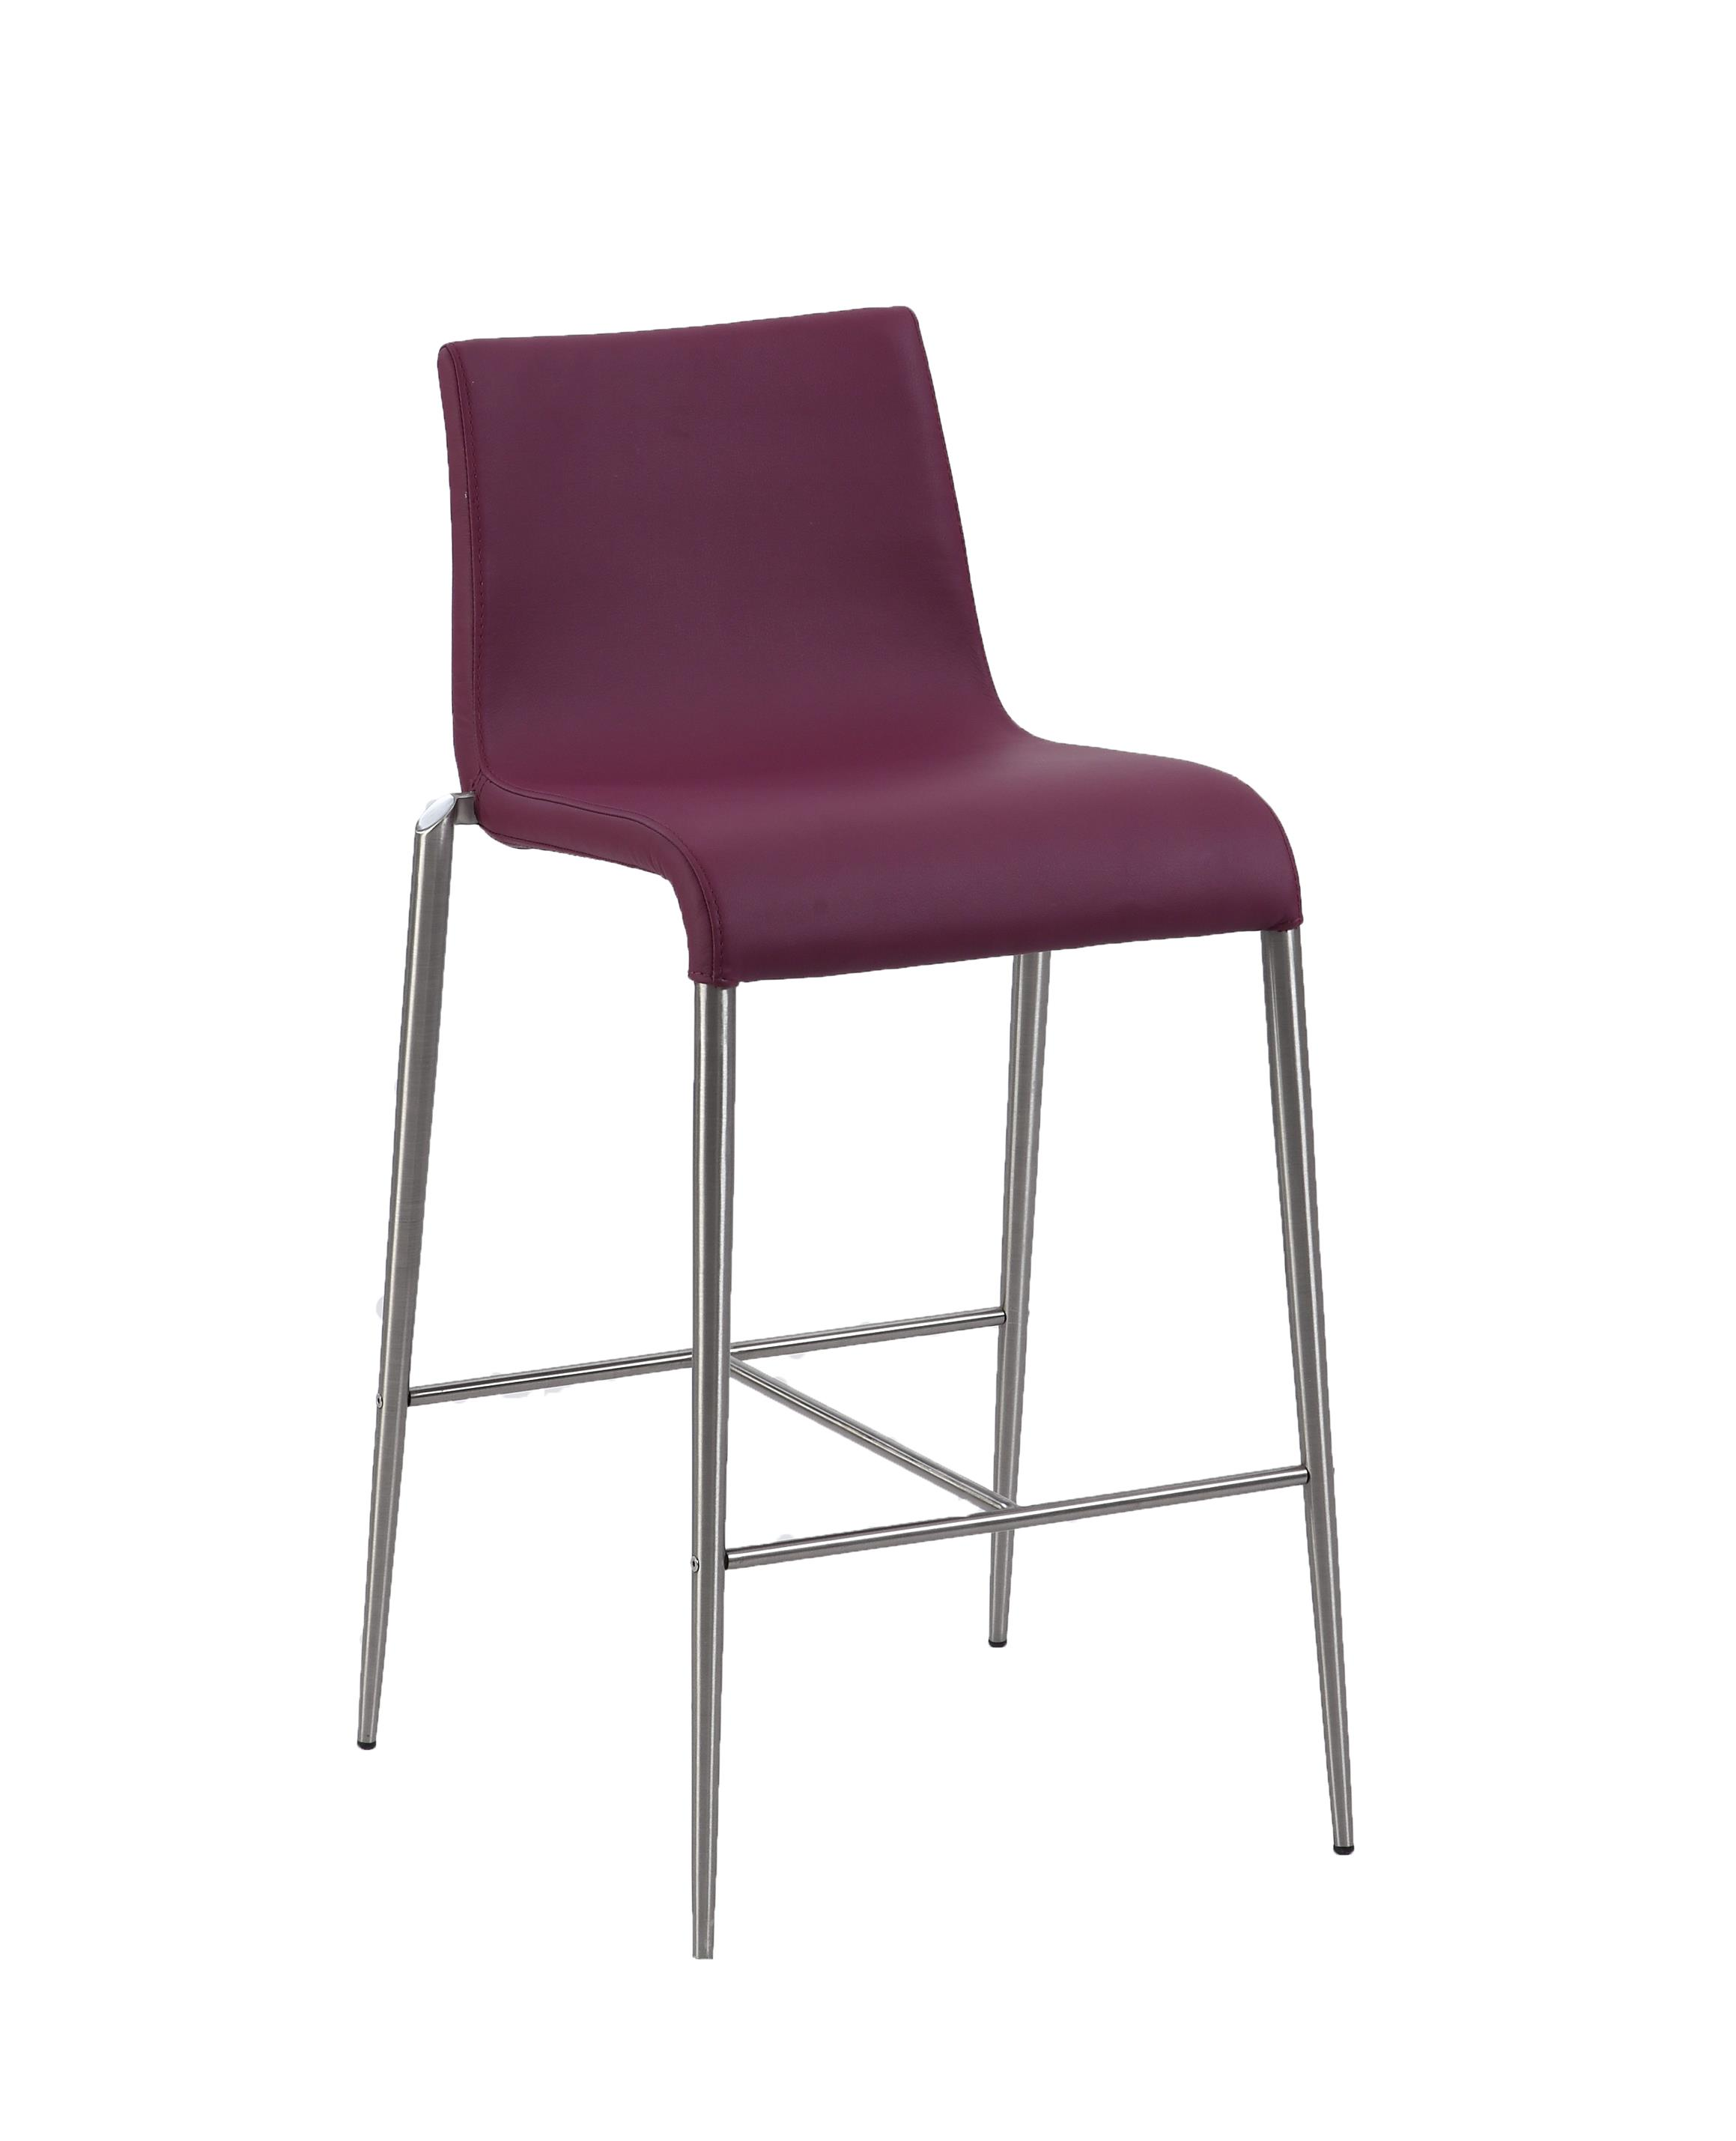 Fantastic Chintaly Remy Upholstered Stool In Purple Counter Stool Walmart Com Uwap Interior Chair Design Uwaporg